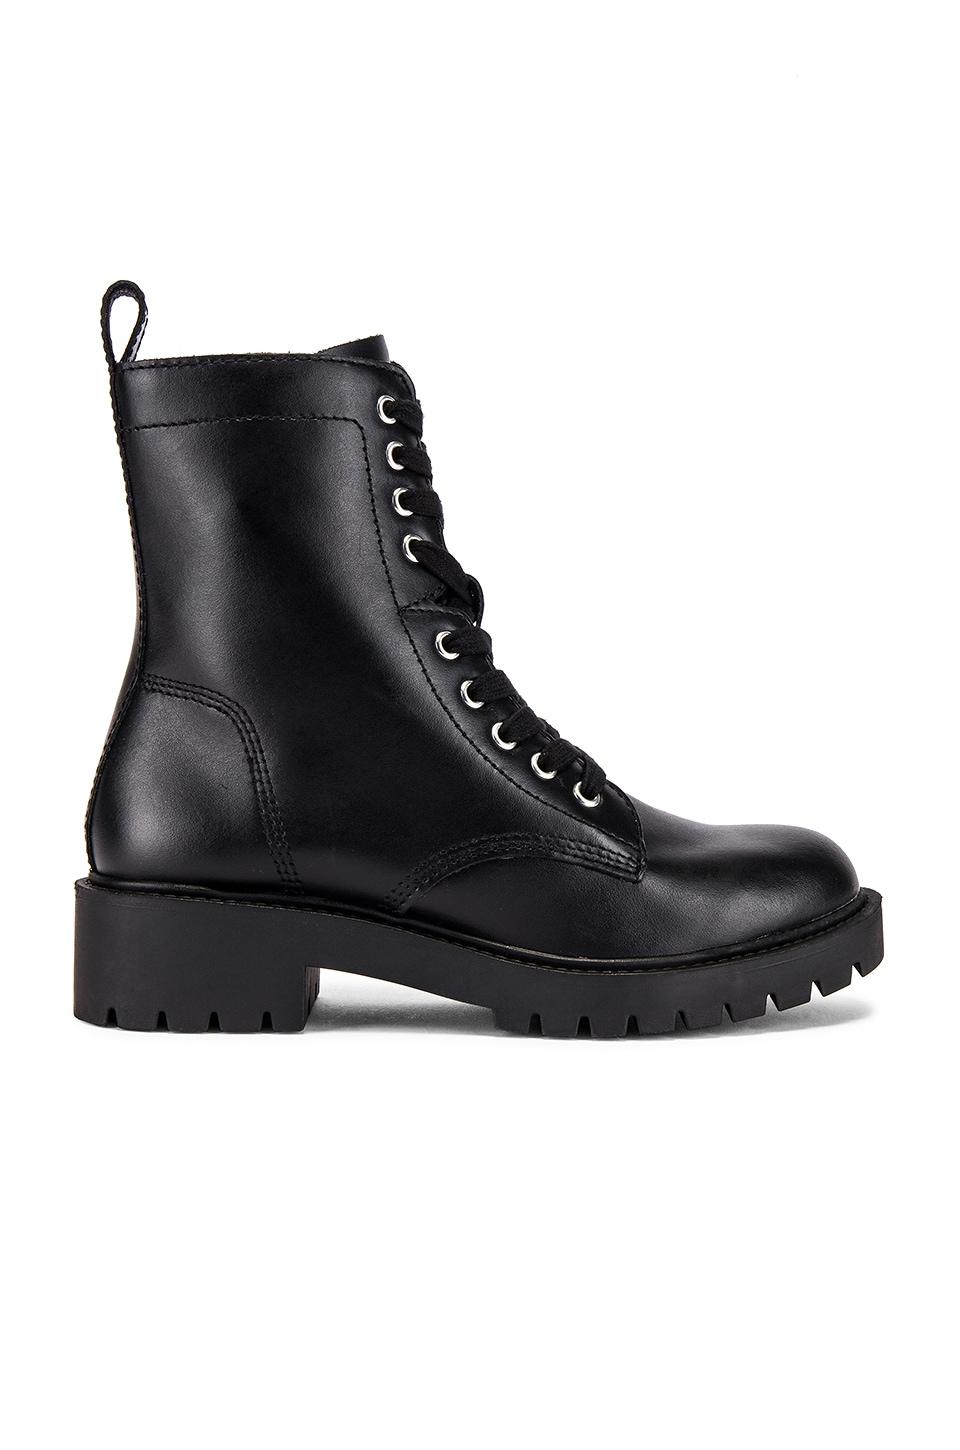 Steve Madden BOTAS CORDONES GUIDED